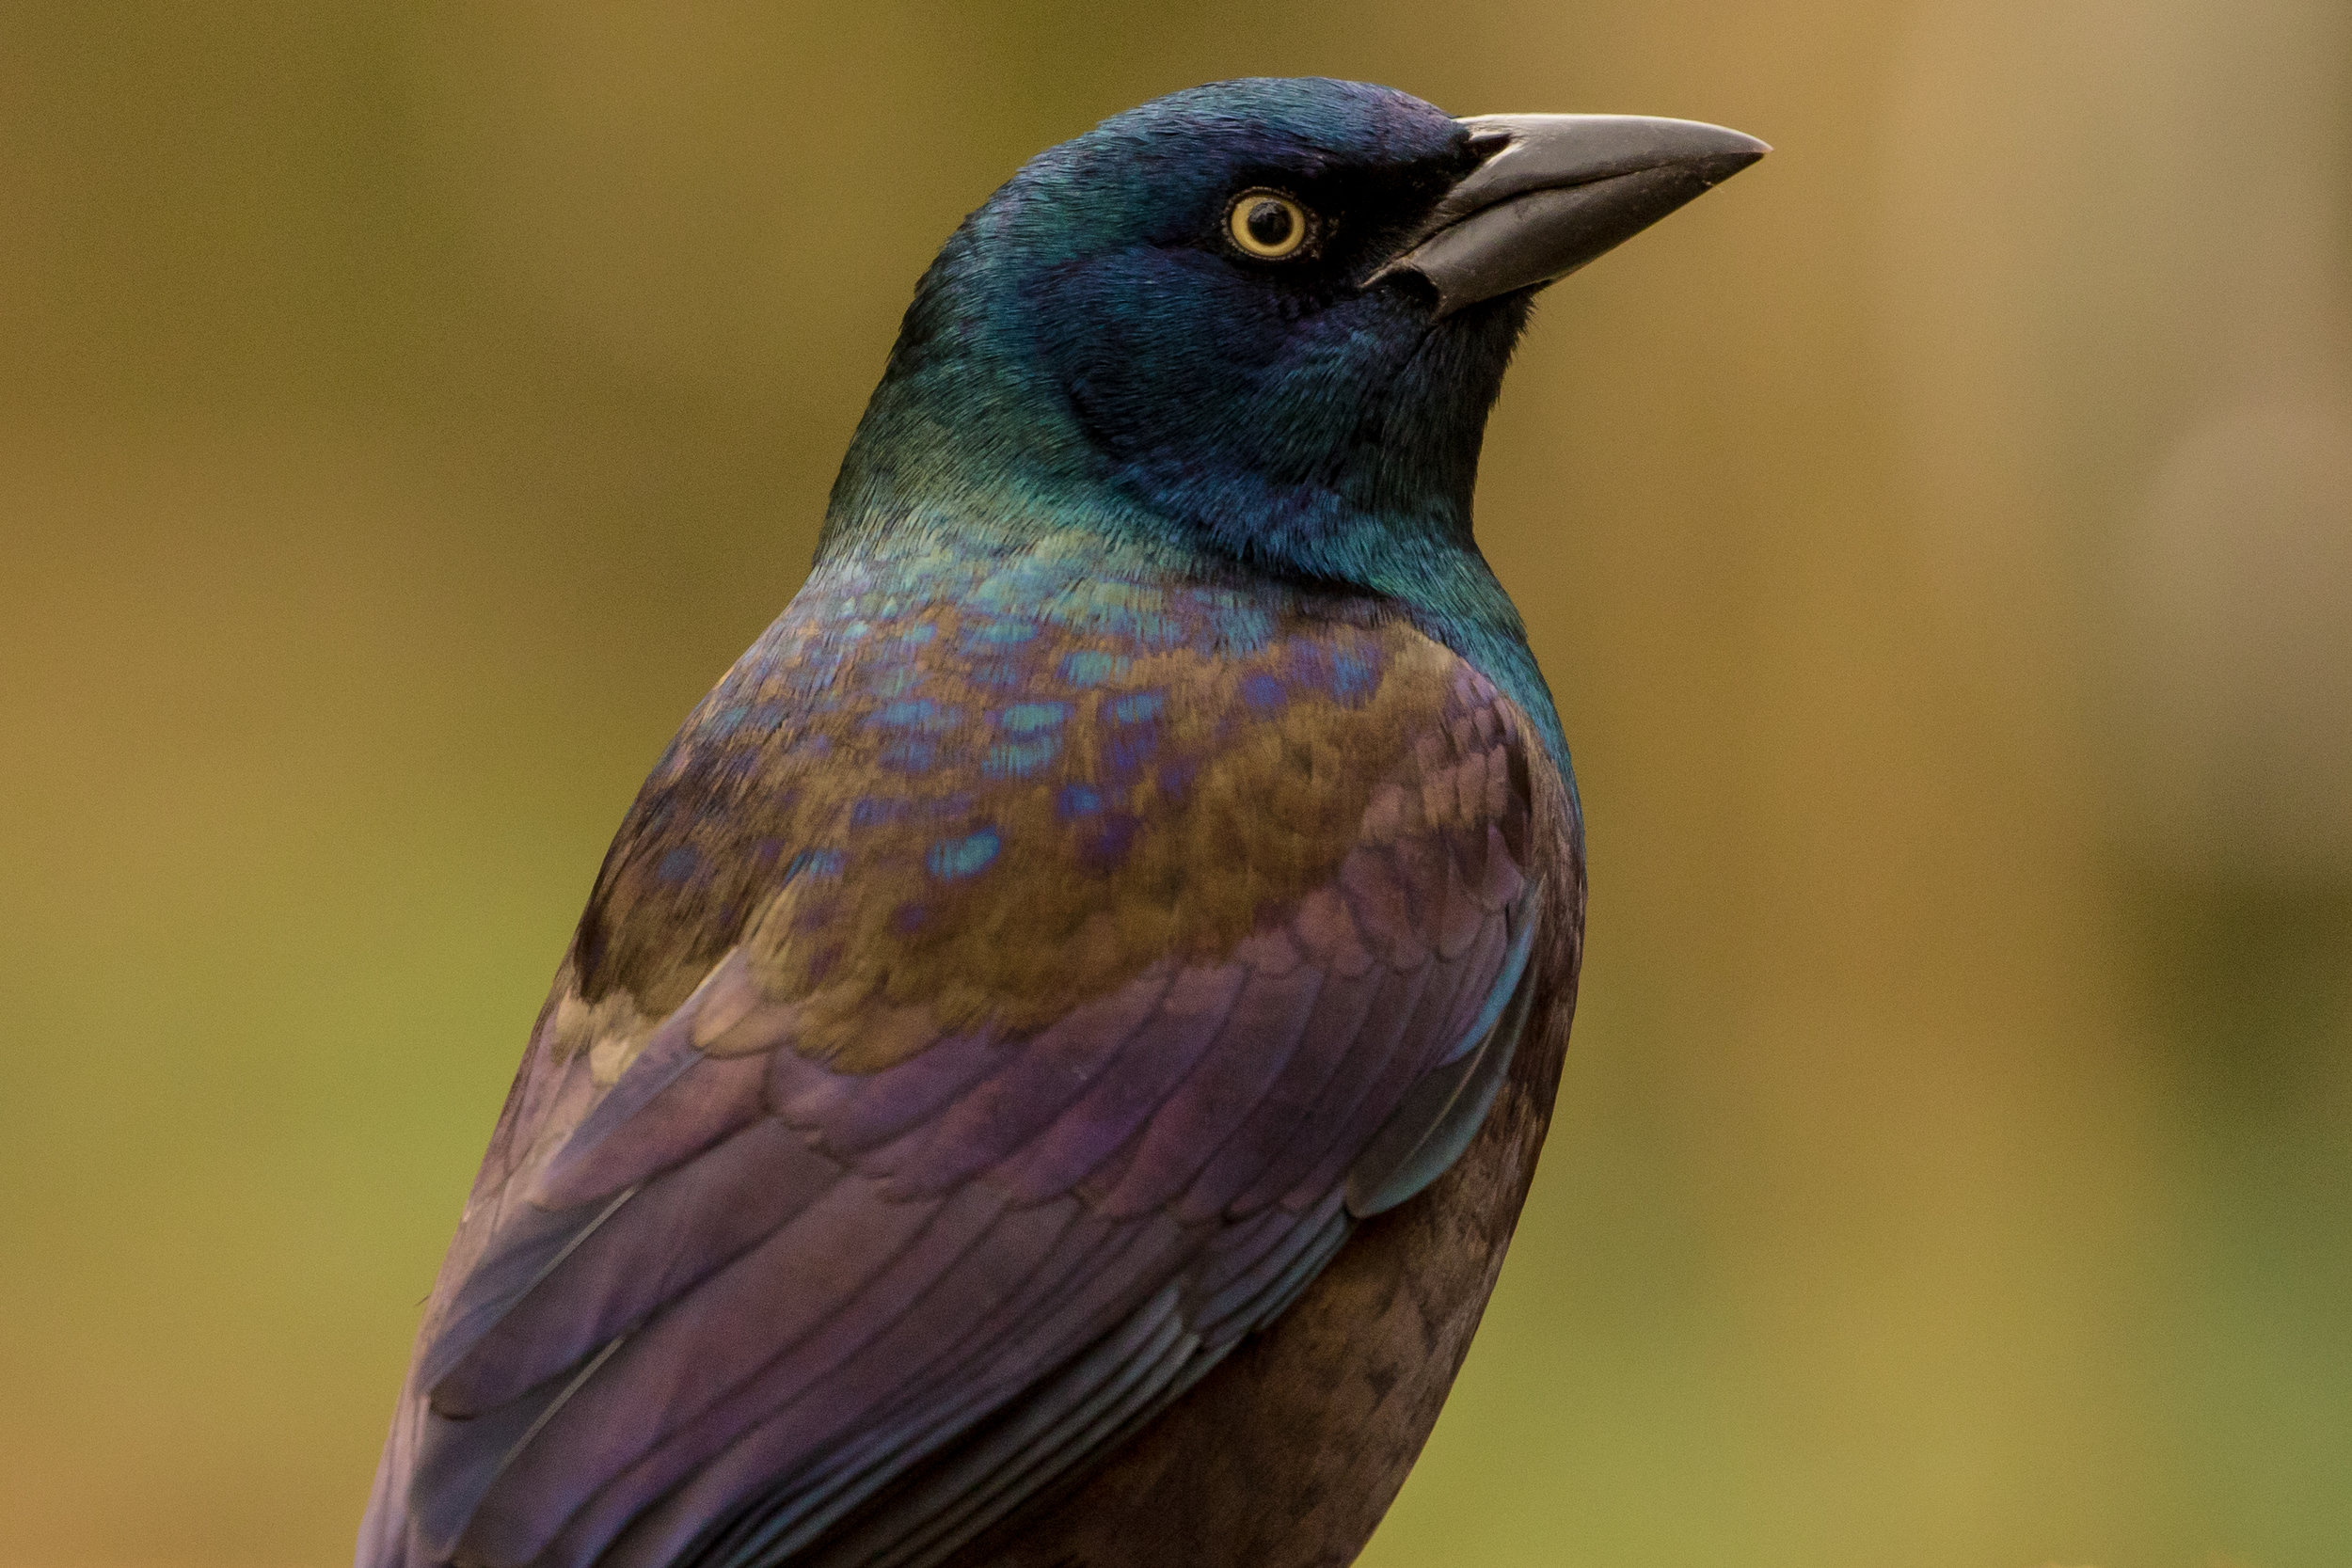 Common Grackle - Cambridge, MA